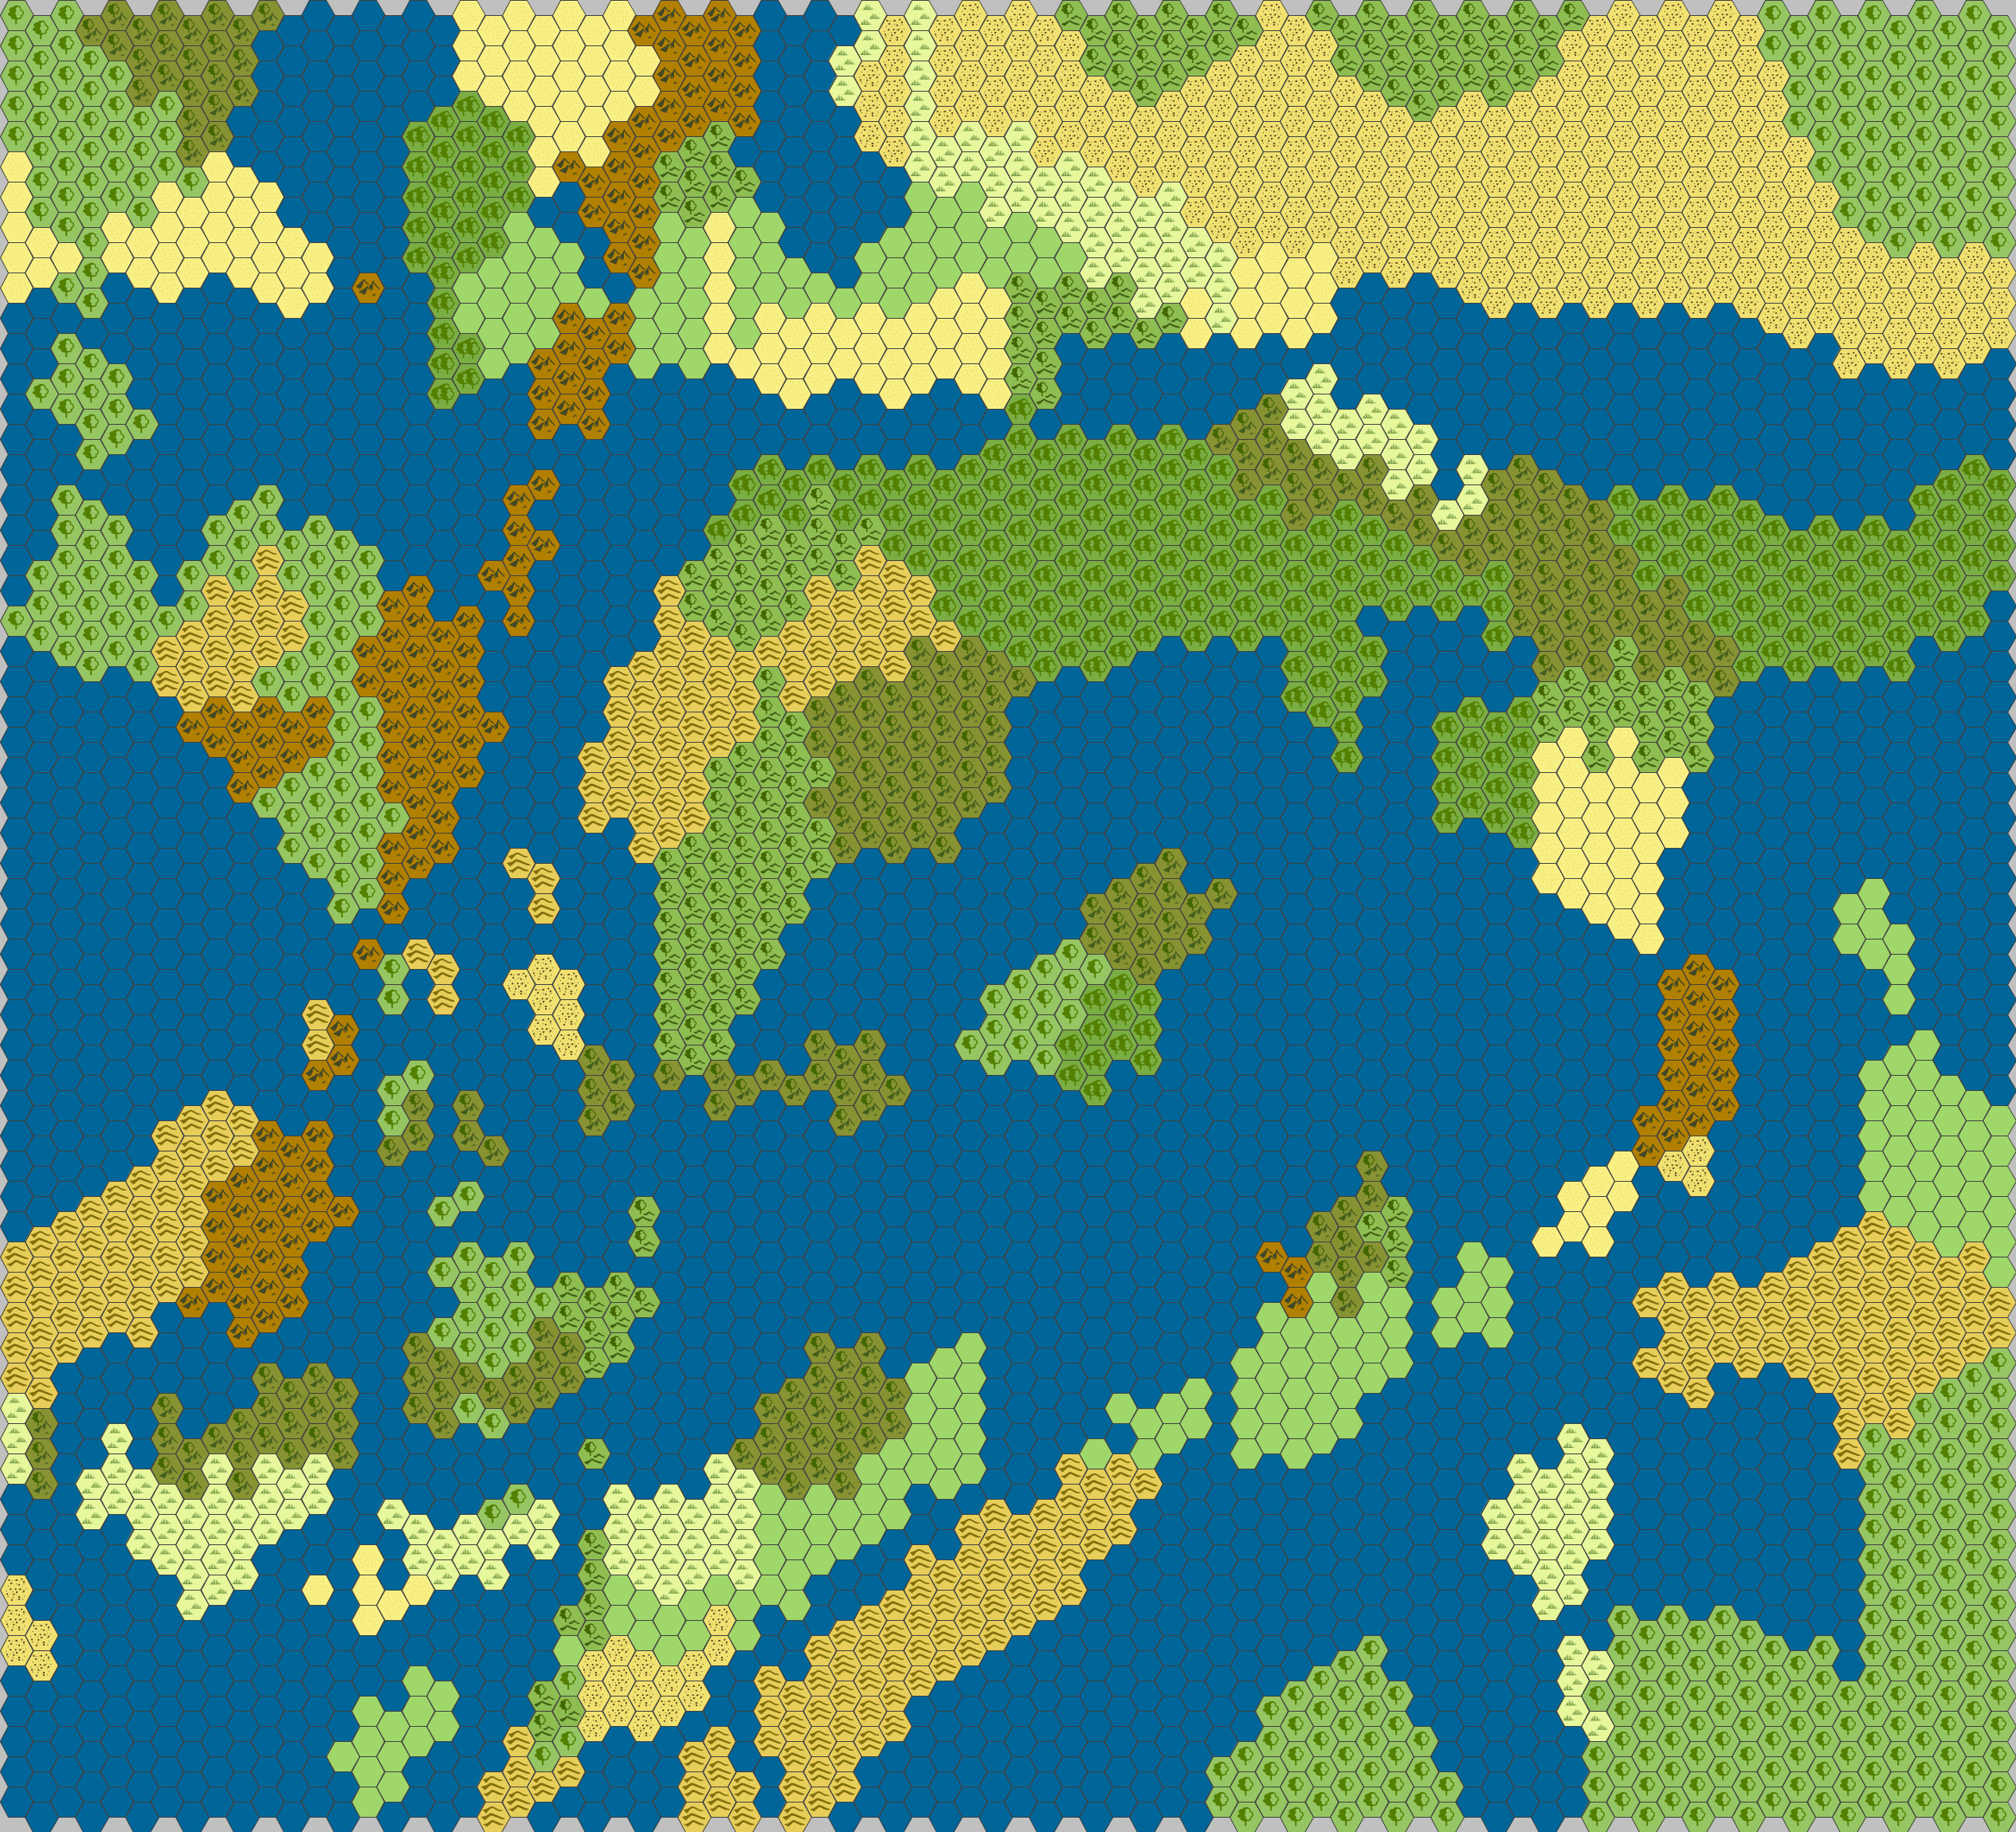 20140406 New Campaign Map